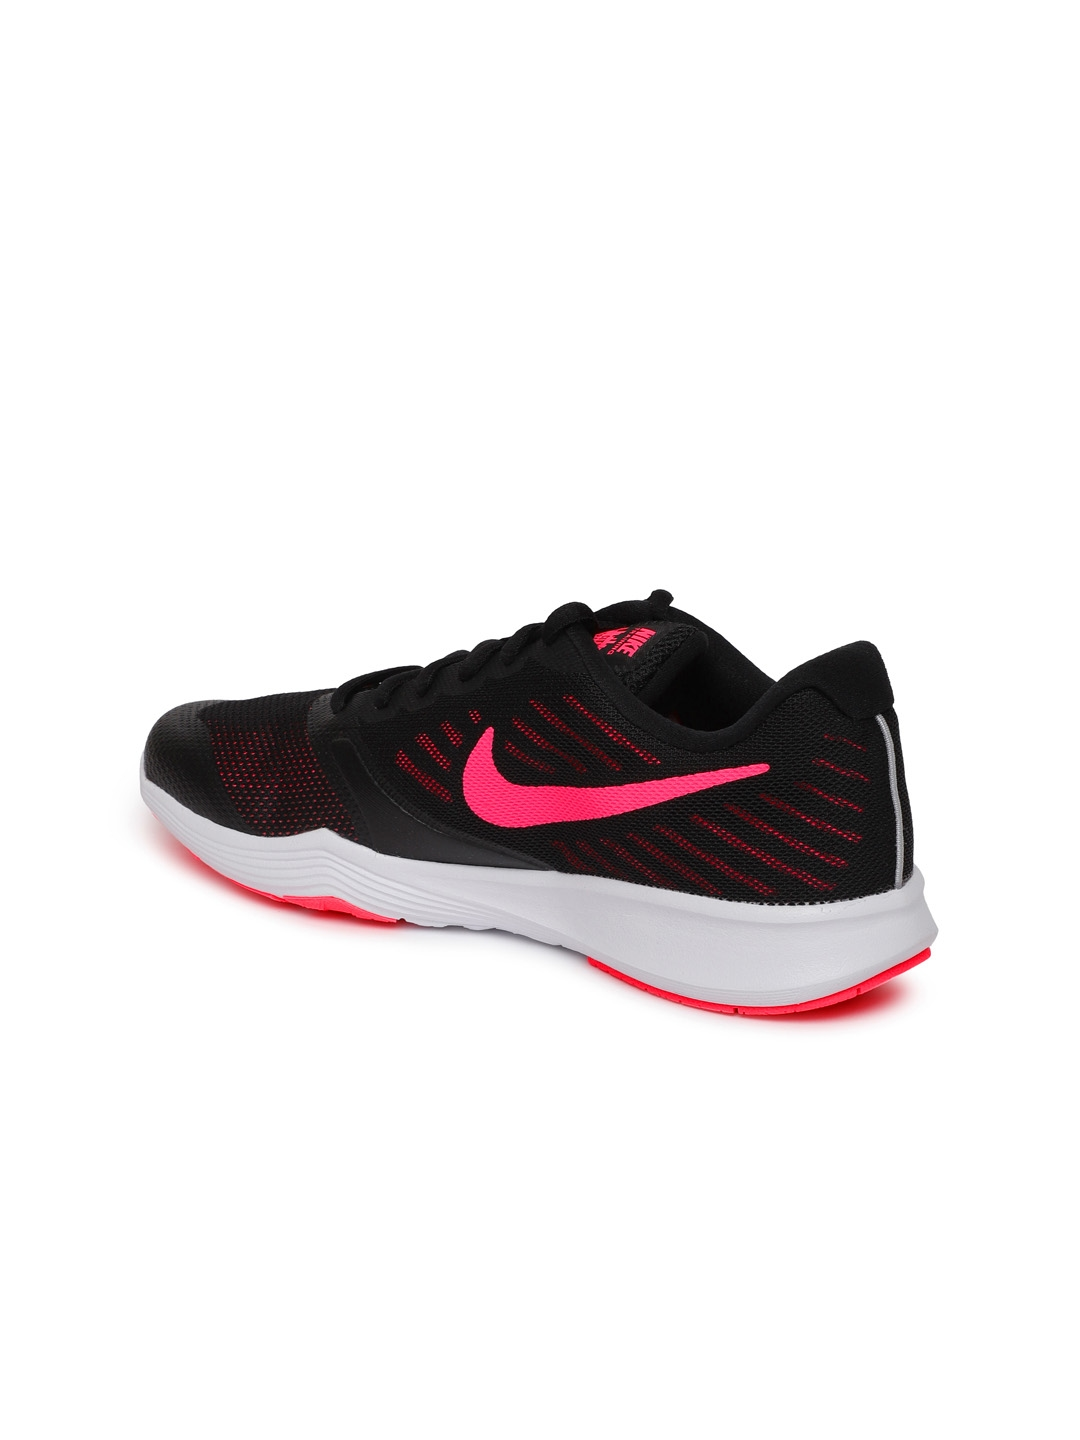 d723c68337a15 Buy Nike Women Black   Pink City Training Shoes - Sports Shoes for ...